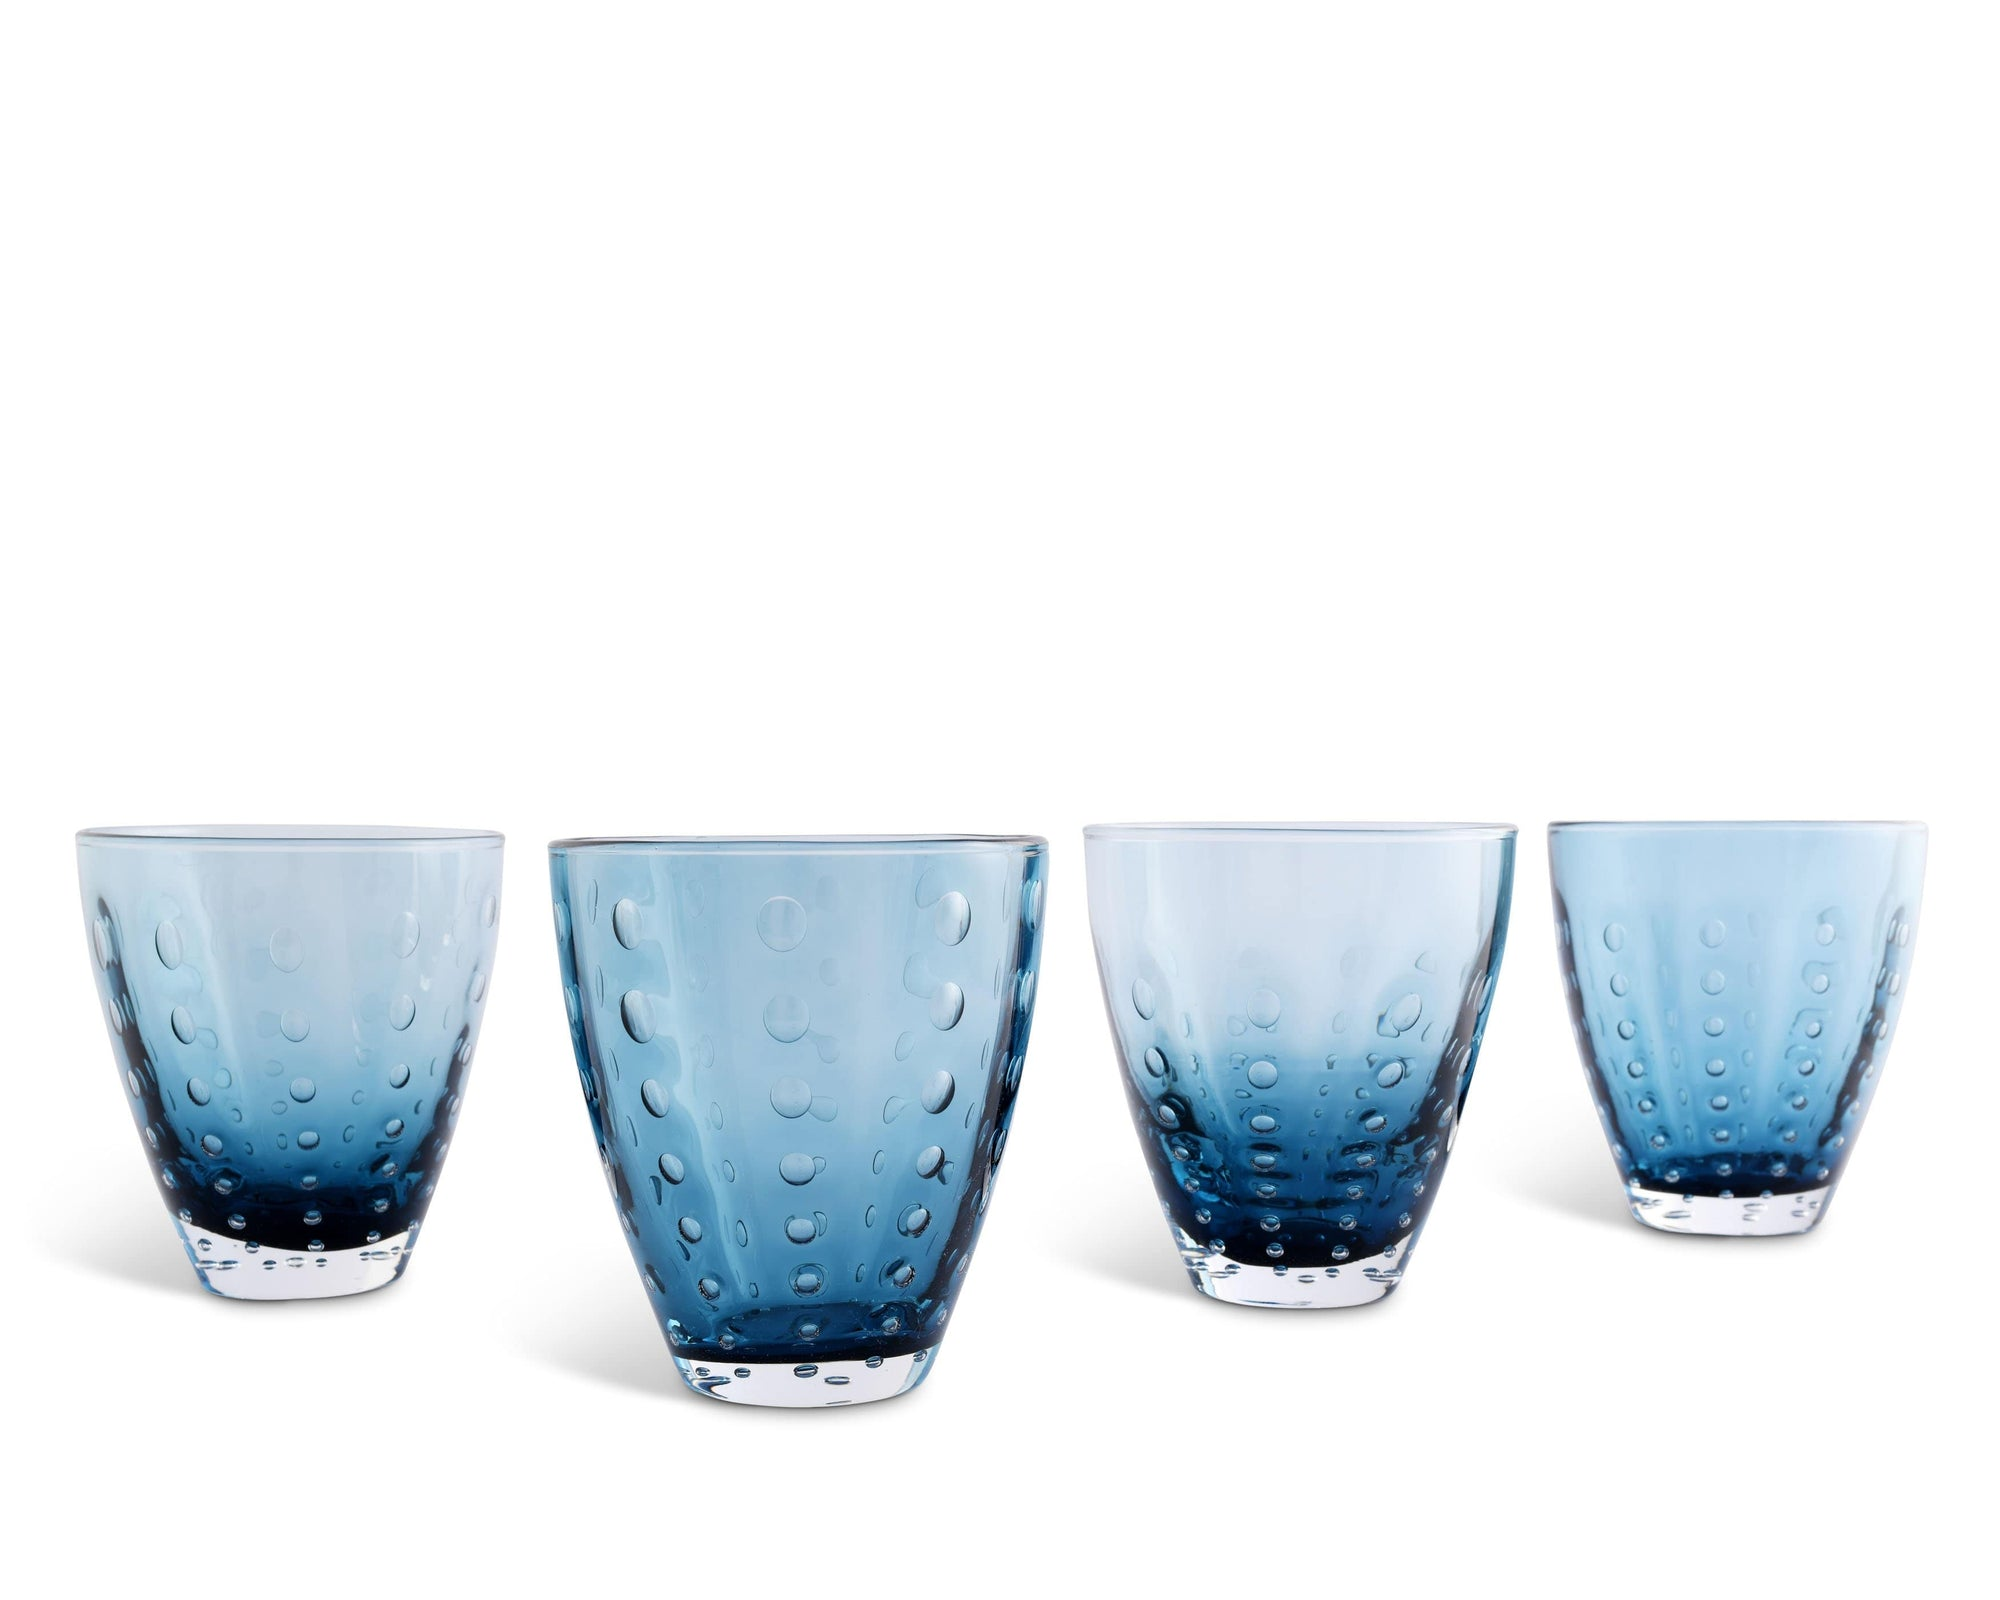 Vagabond House Hand Blown Glassware On the Rocks Glass - Sea Drops-Deep Blue  Set of 4